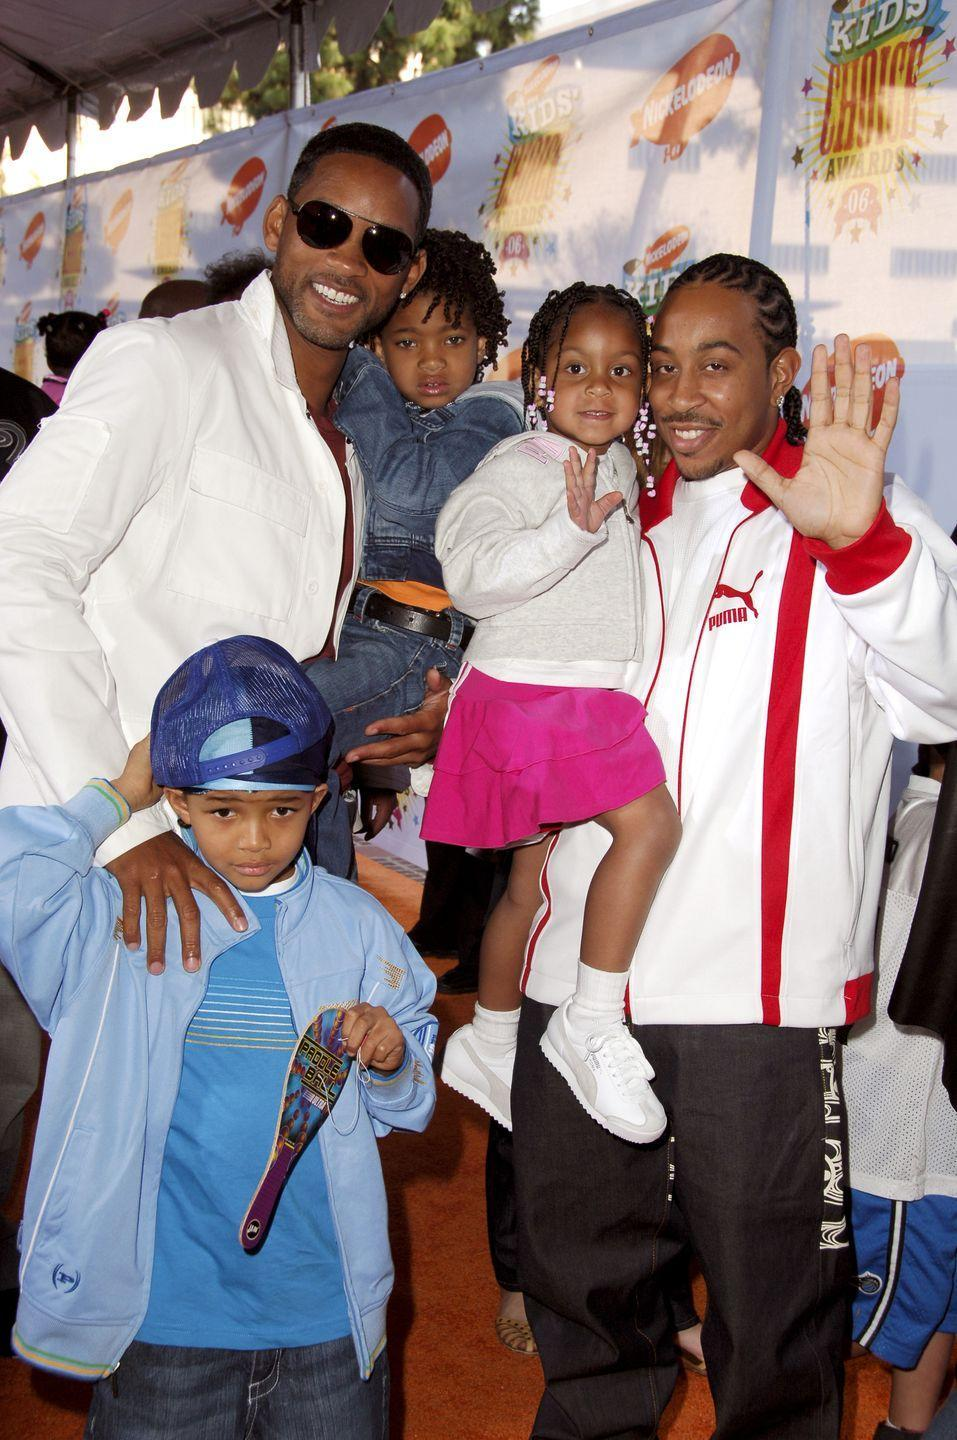 <p>It was quite literally bring your children to work day at the 2006 Nickelodeon Kids' Choice Awards. Not only did Will Smith bring along his crew, Jaden and Willow, but Ludacris's daughter Karma was at the red carpet event as well. </p>